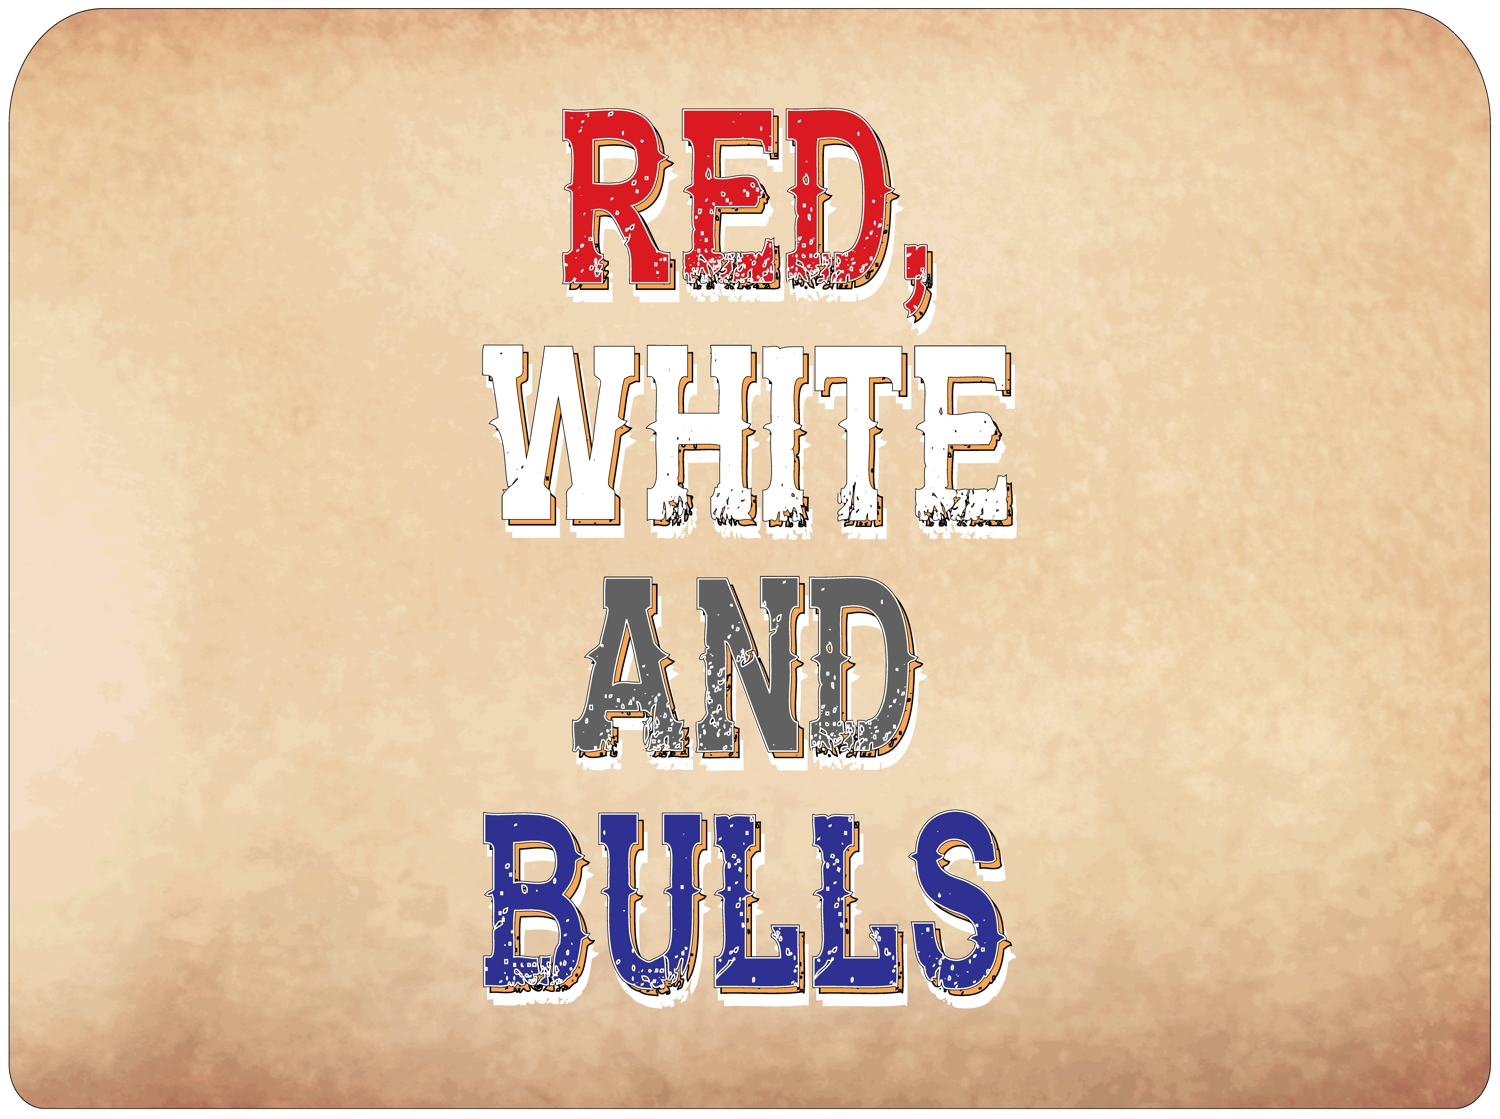 Red 20white 20and 20bulls 202015 20  20artwork